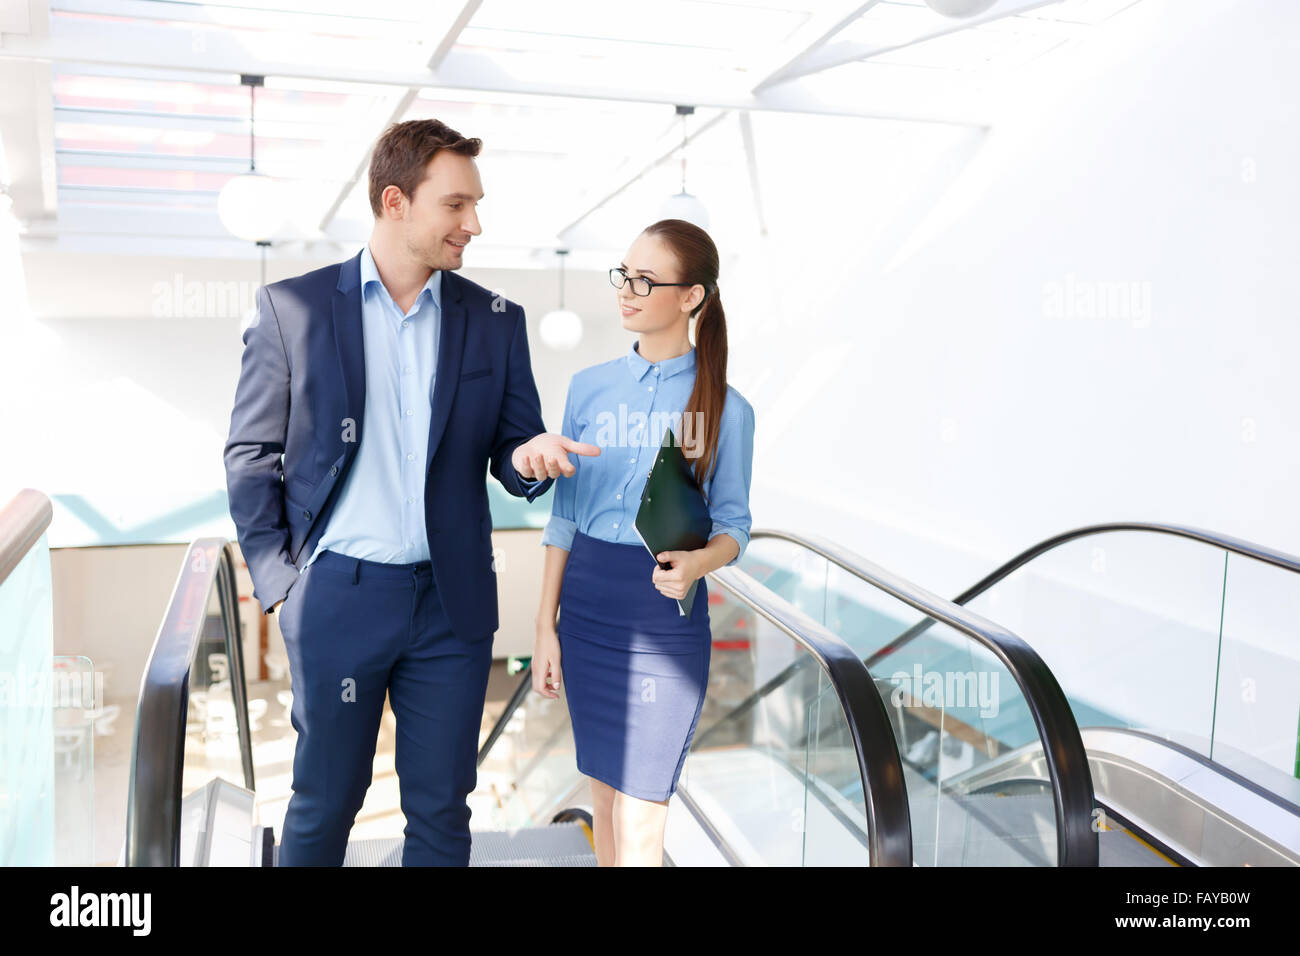 Workman is chitchatting with his office friend. - Stock Image